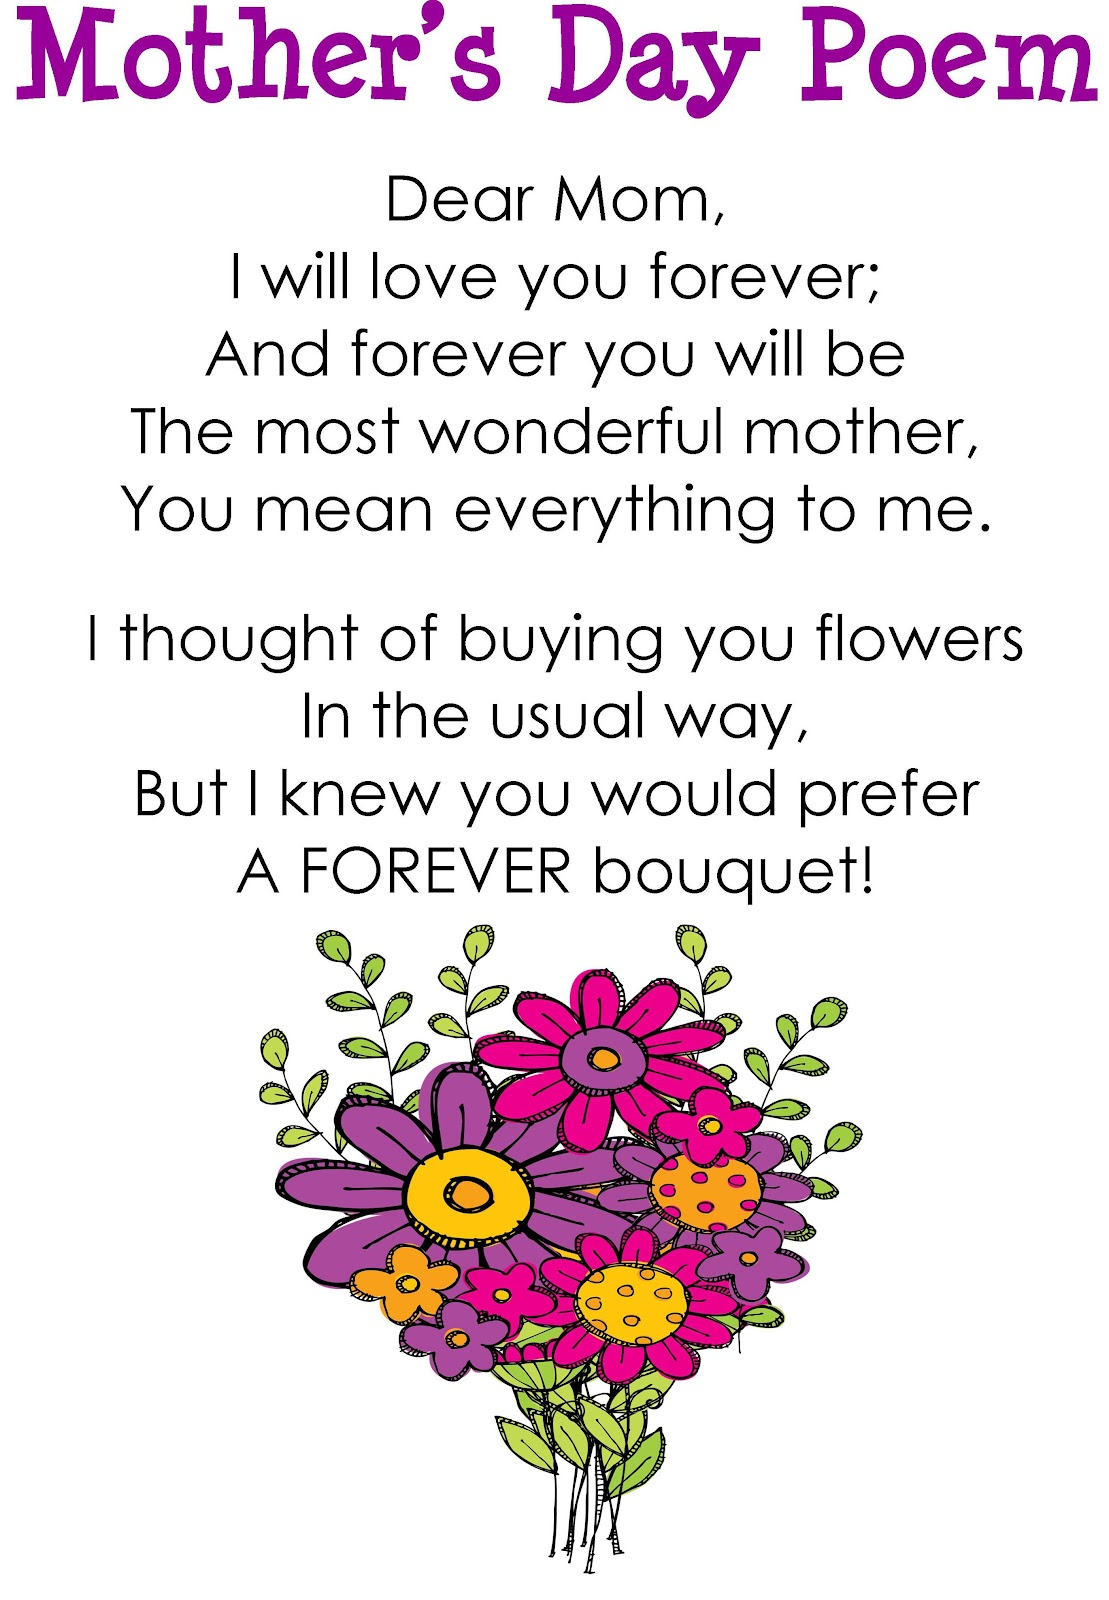 Quotes About A Mother's Love My Coolest Quotes Mother's Day Poem